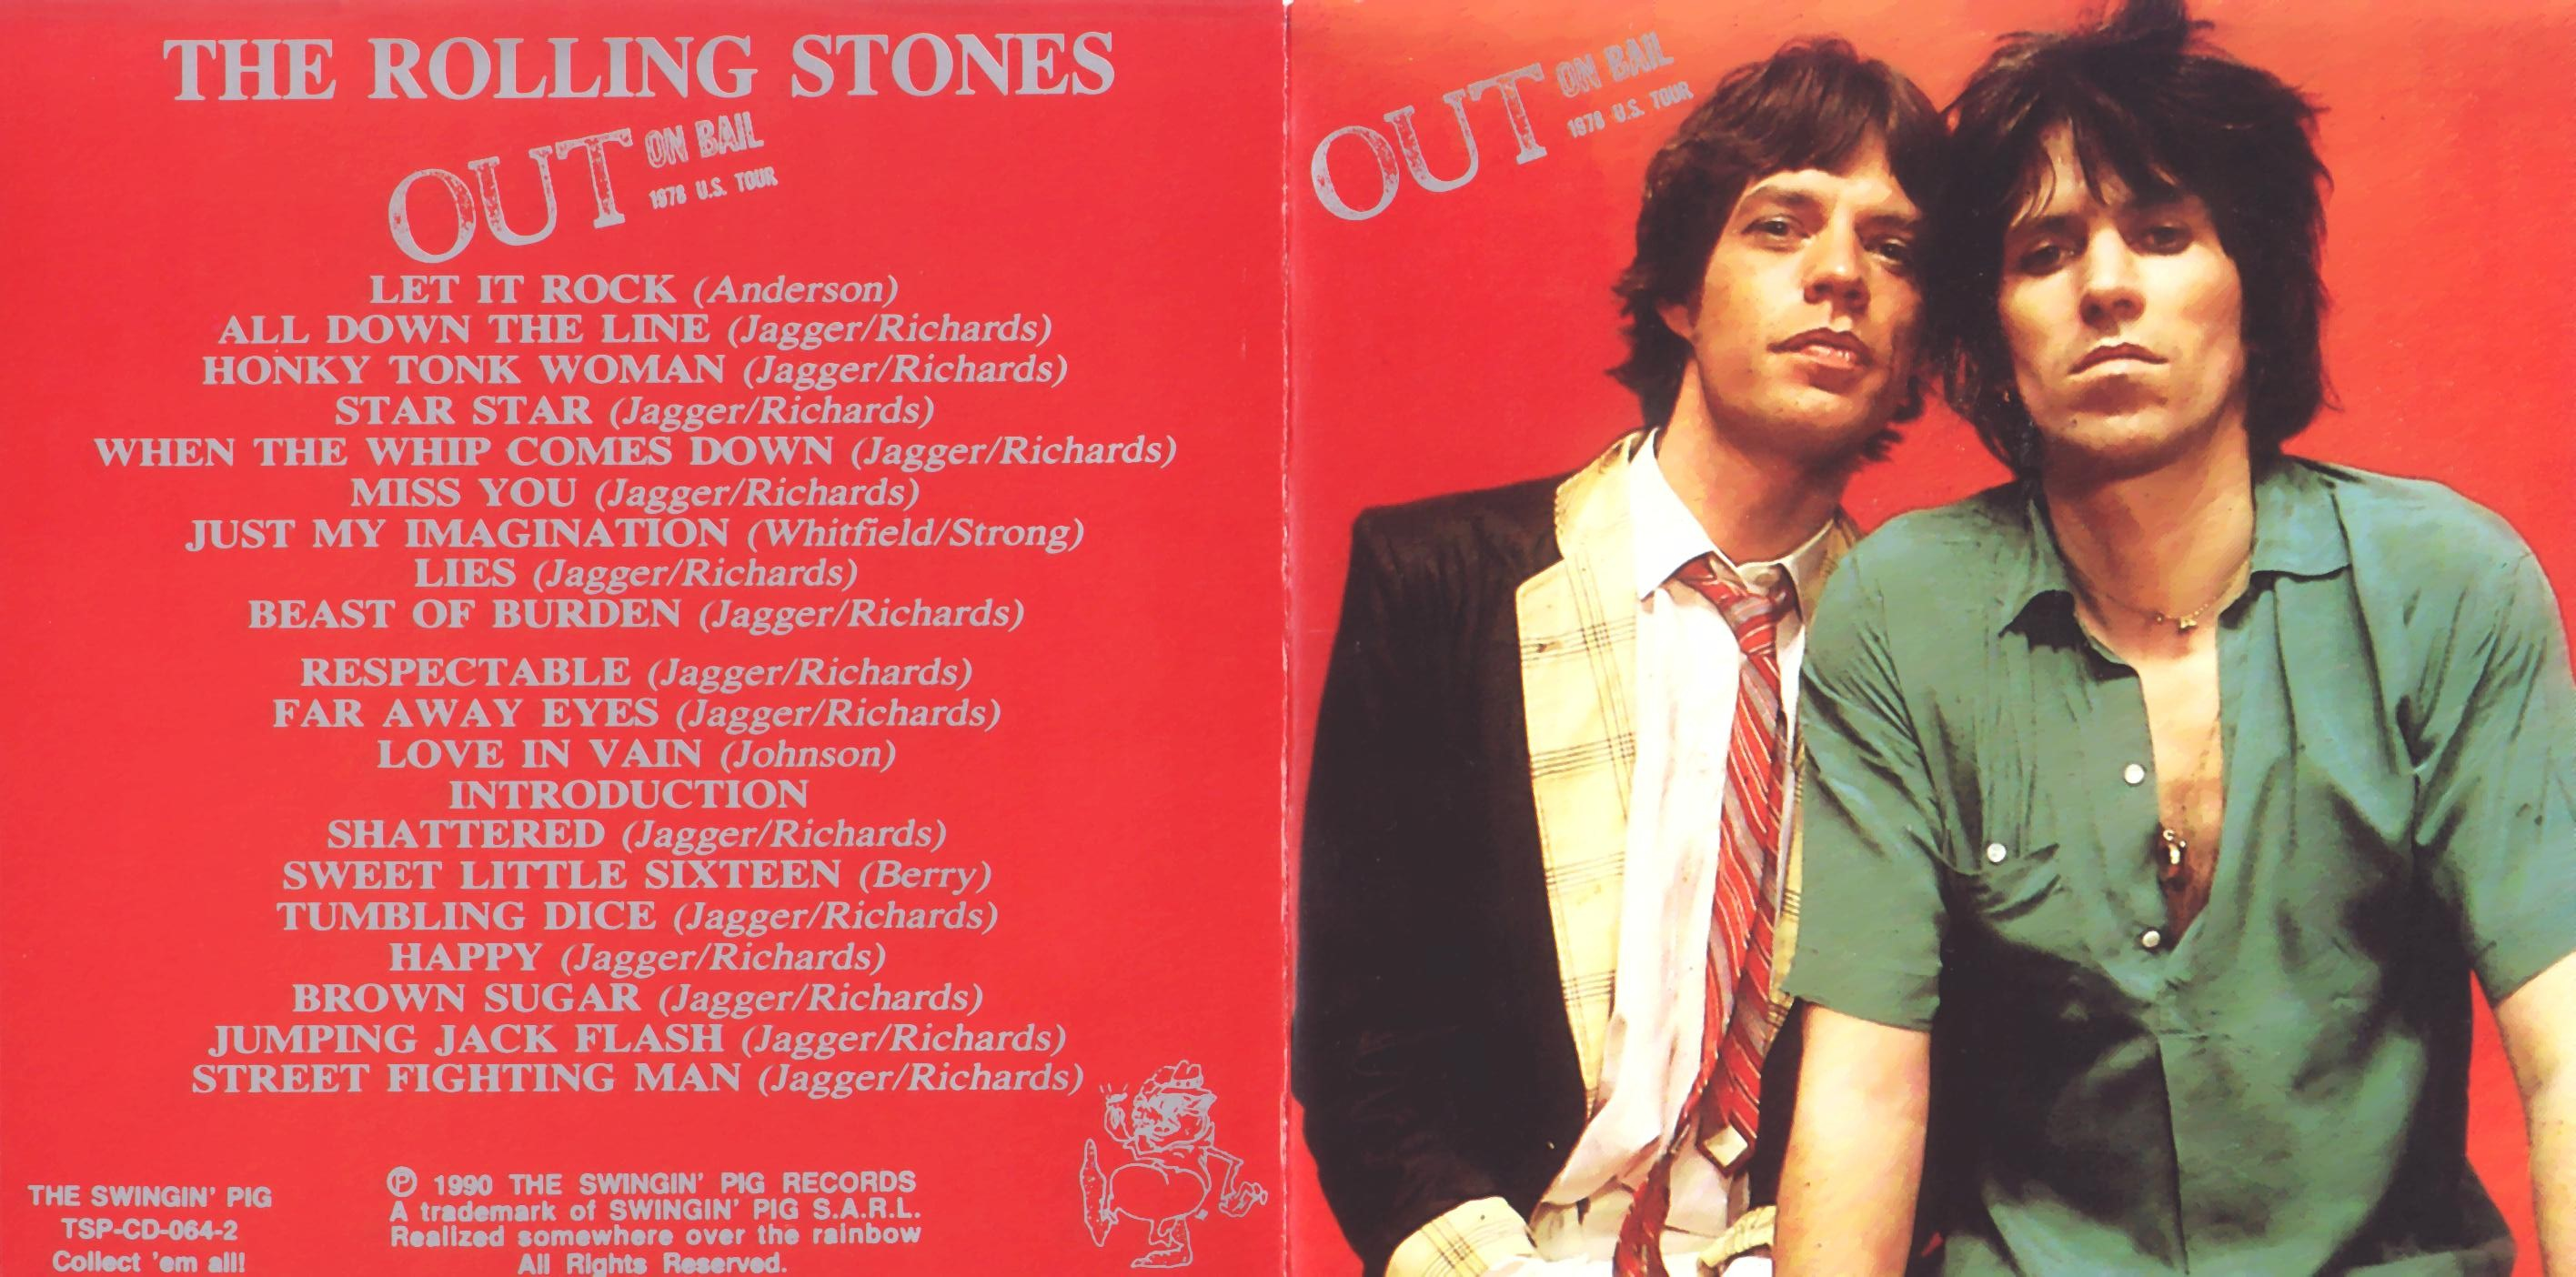 The Rolling Stones Out On Bail New Jersey 1978